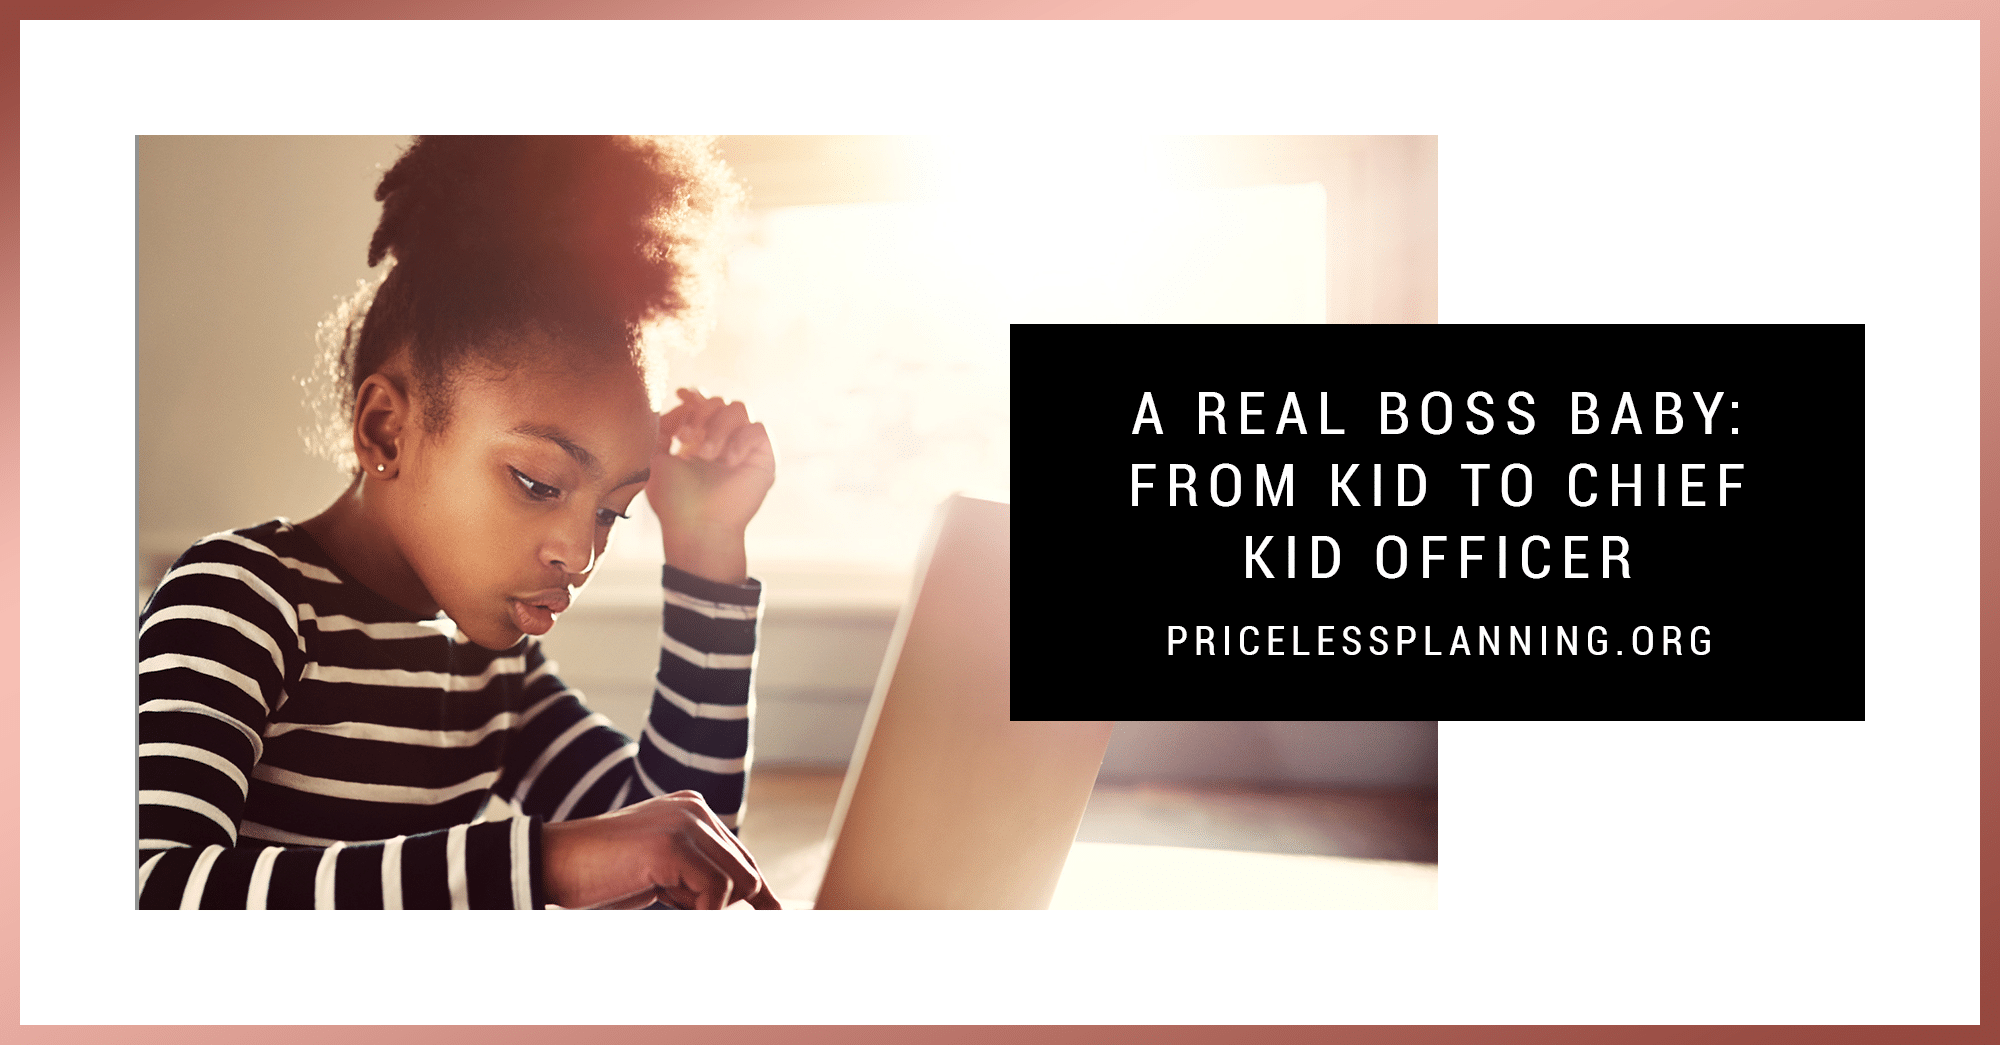 A Real Boss Baby: From Kid to Chief Kid Officer - Priceless Planning